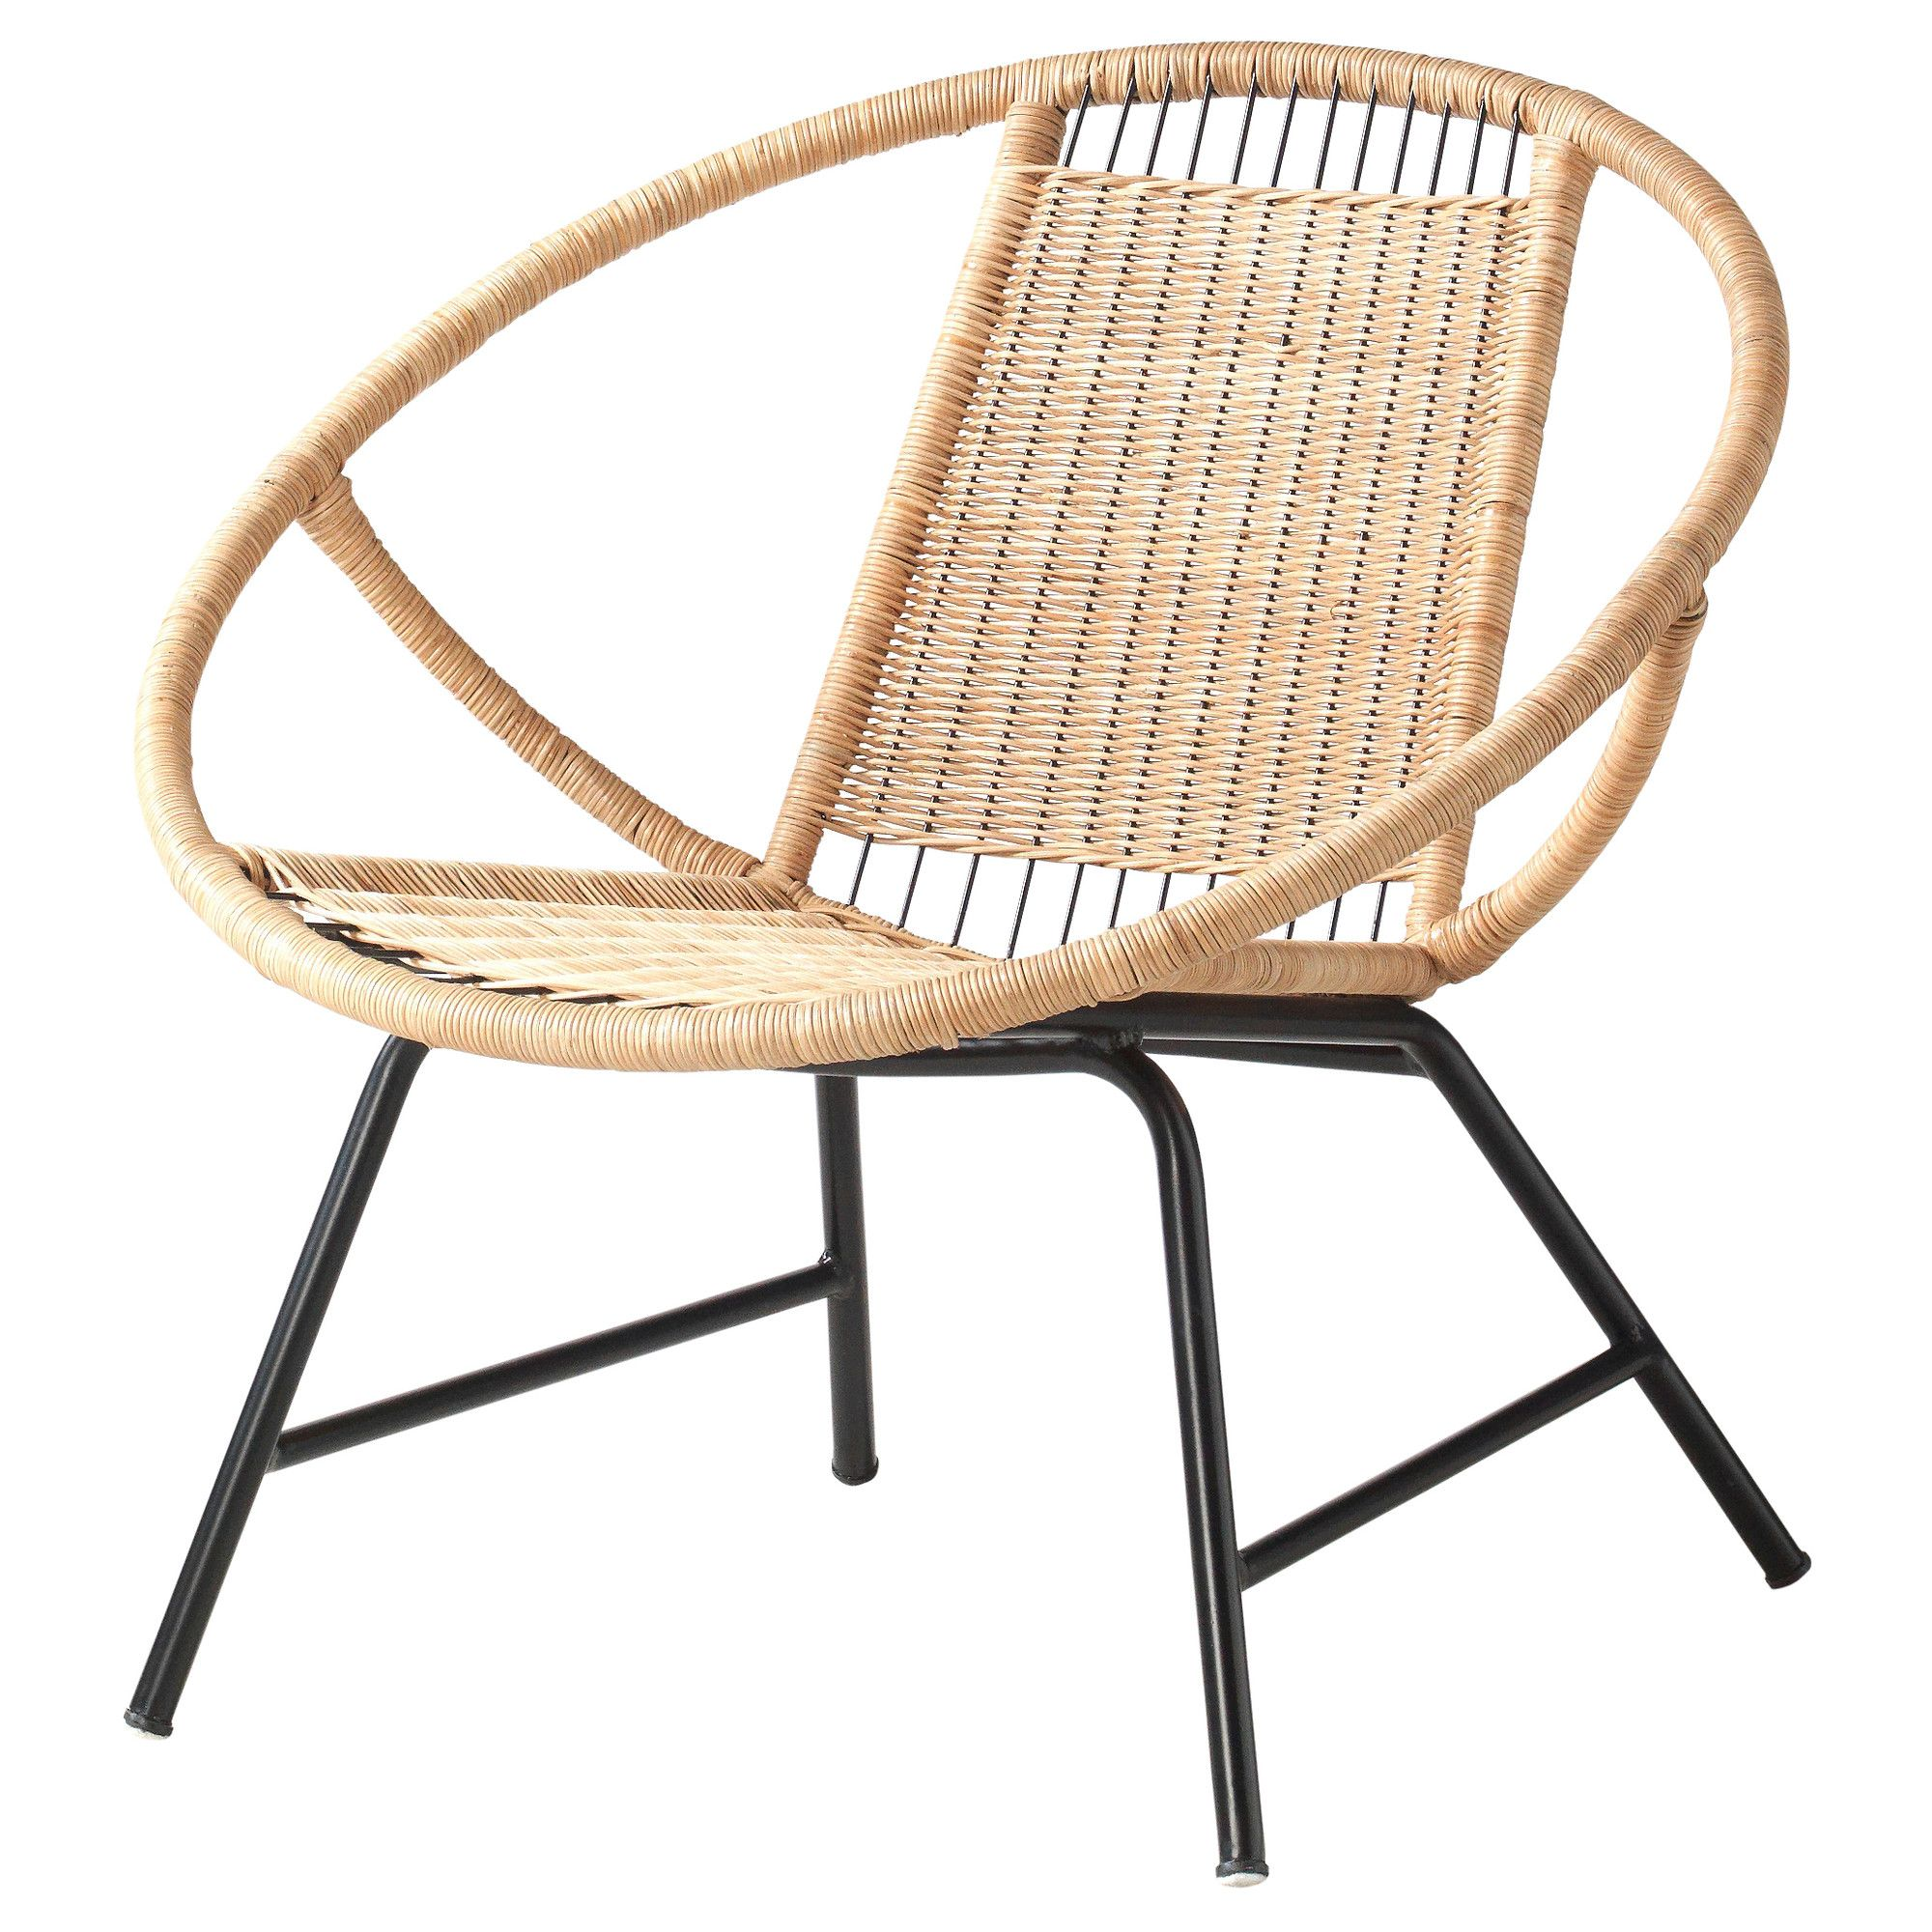 Ikea Rattan Stuhl 60 Gagnet Chair Ikea Designing Small Spaces And Patios